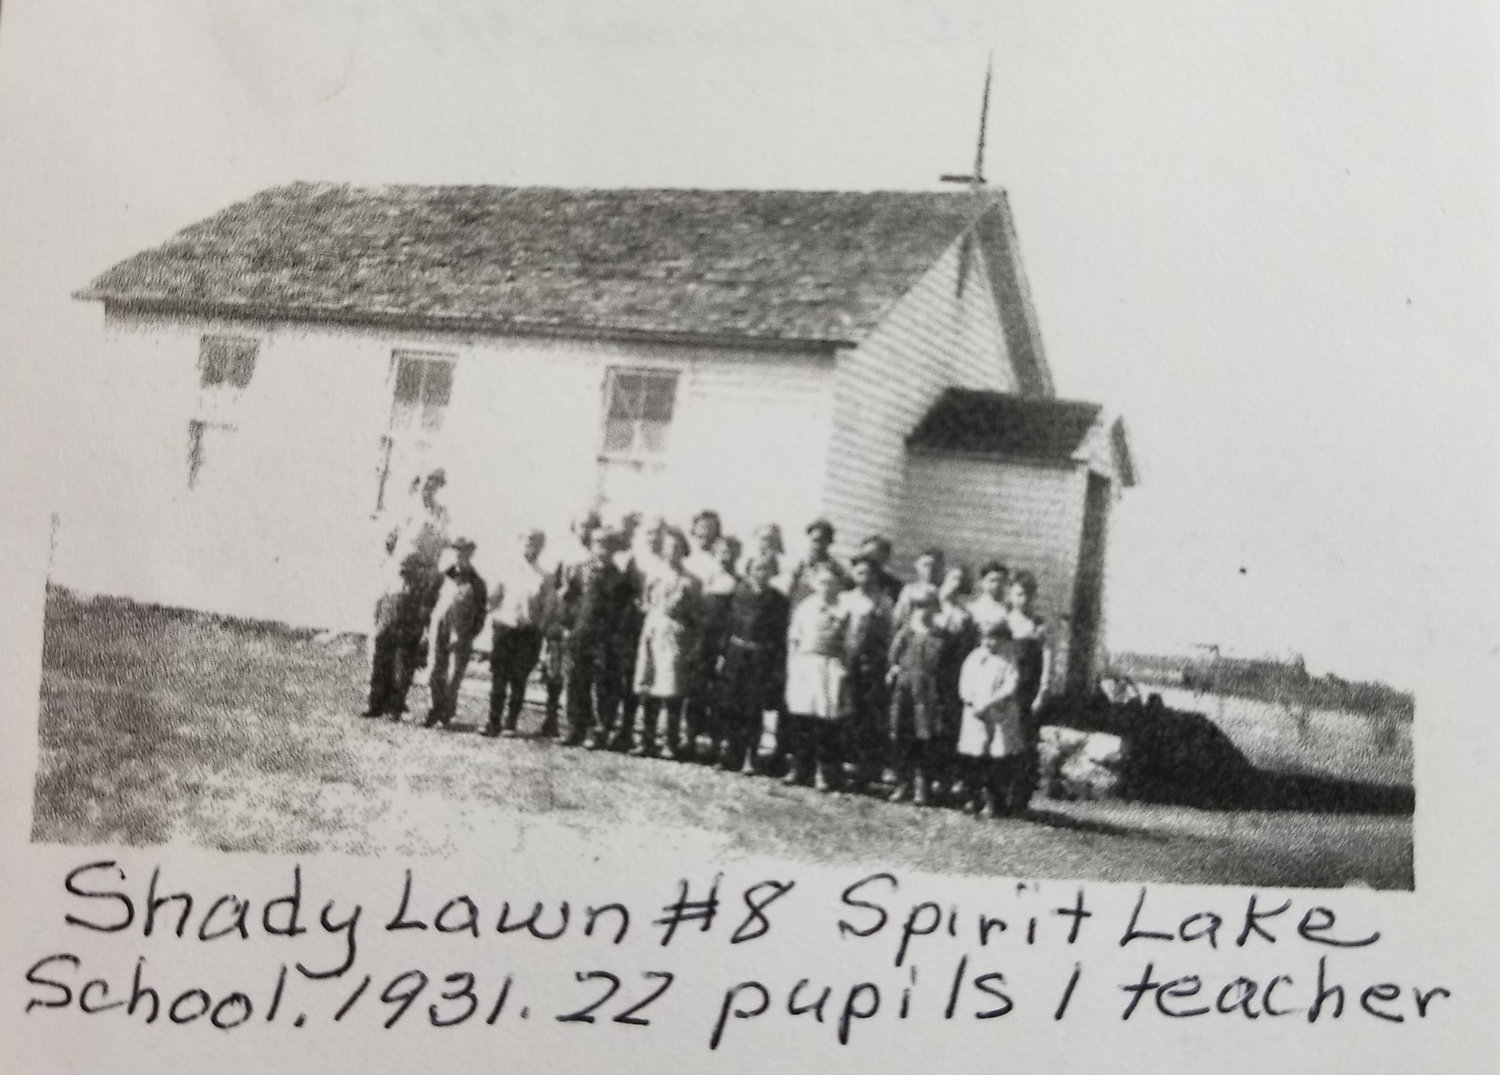 In this time of COVID-19, school means parents, computers and on-line lessons for many students. Looking to the past, a one-room schoolhouse with students of all ages must have been a different kind of challenge for a teacher.